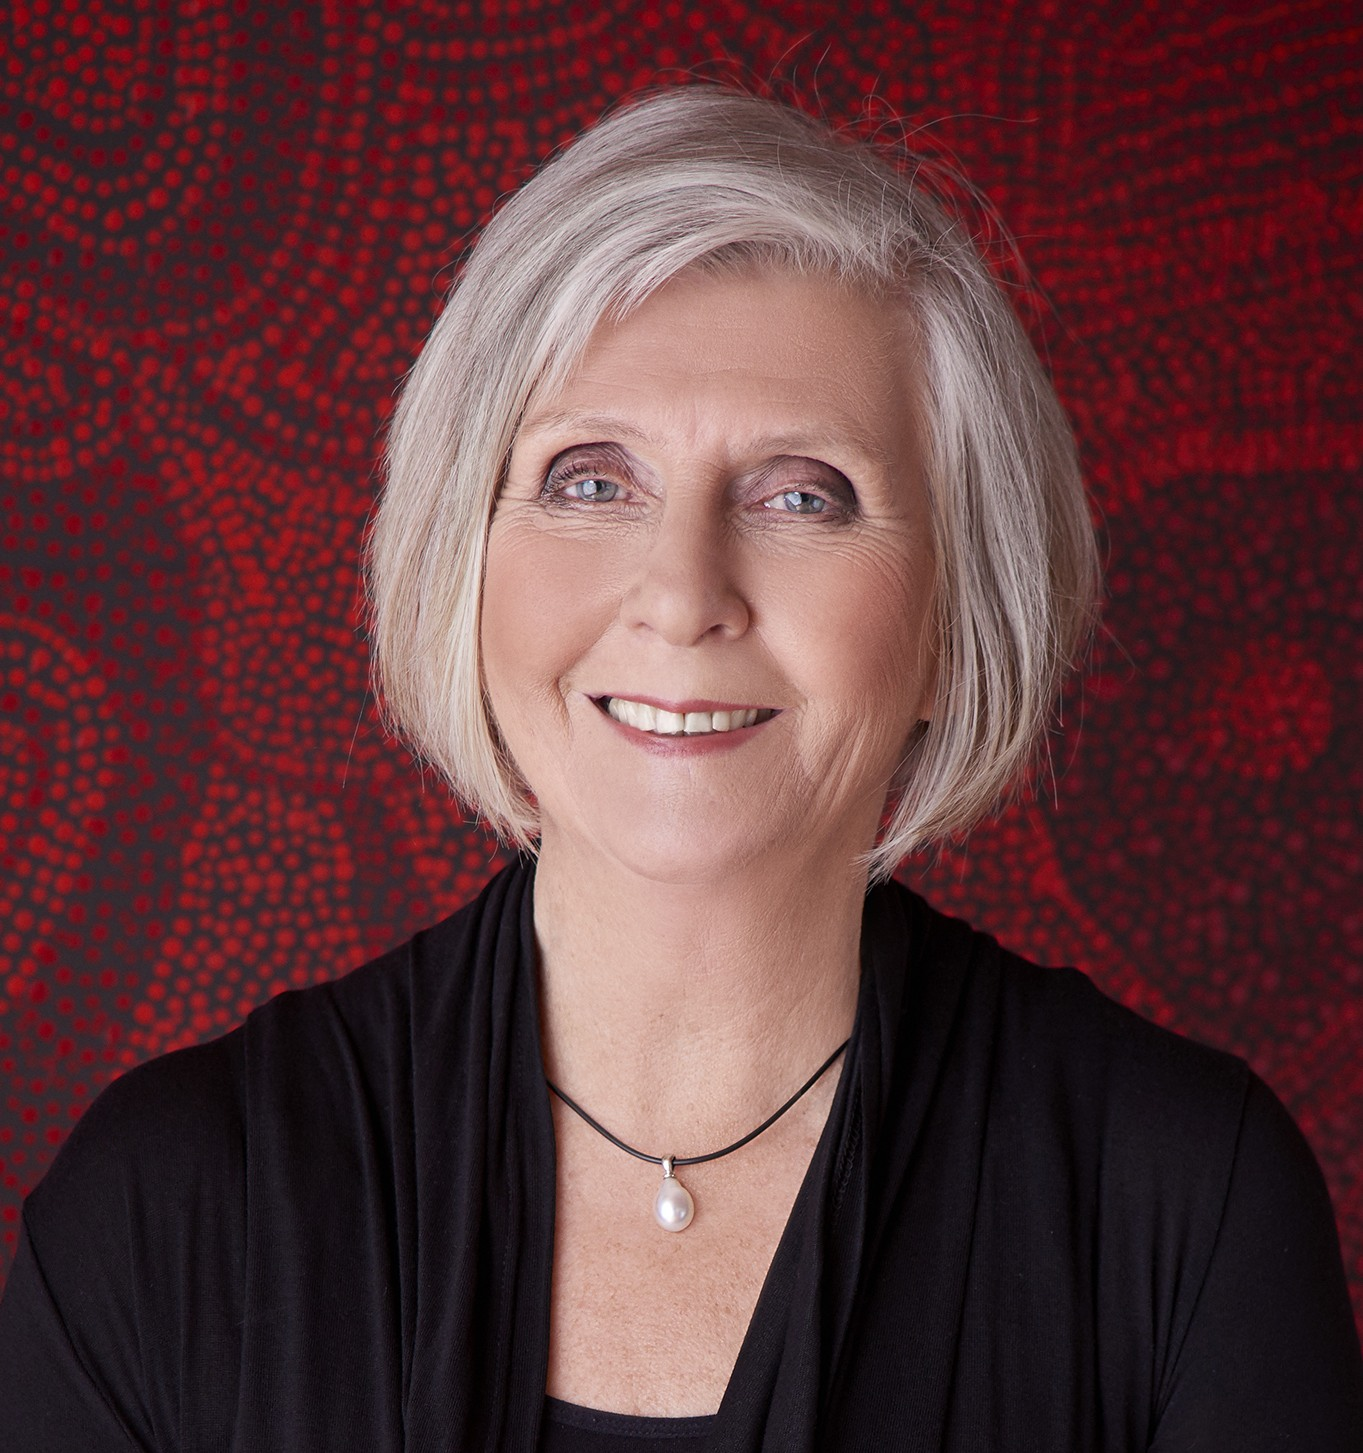 Susan Mc Culloch, OAM Adjunct Professor, College or Design and Social Context, RMIT University